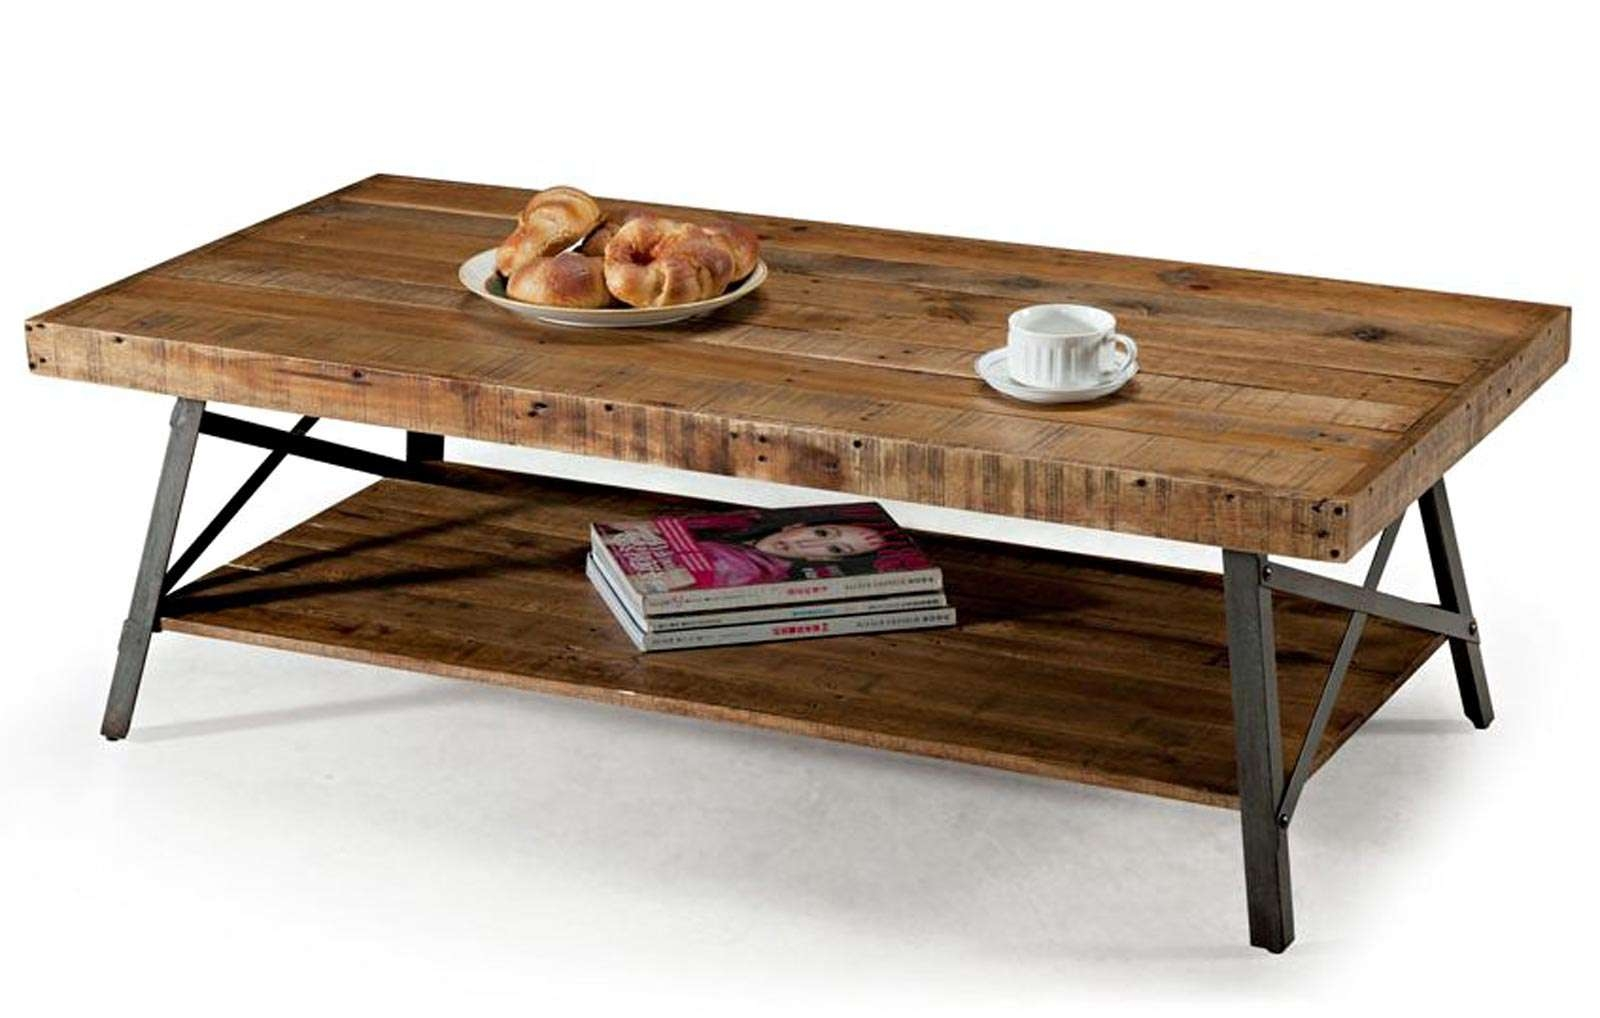 Top 20 of Rustic Wooden Coffee Tables